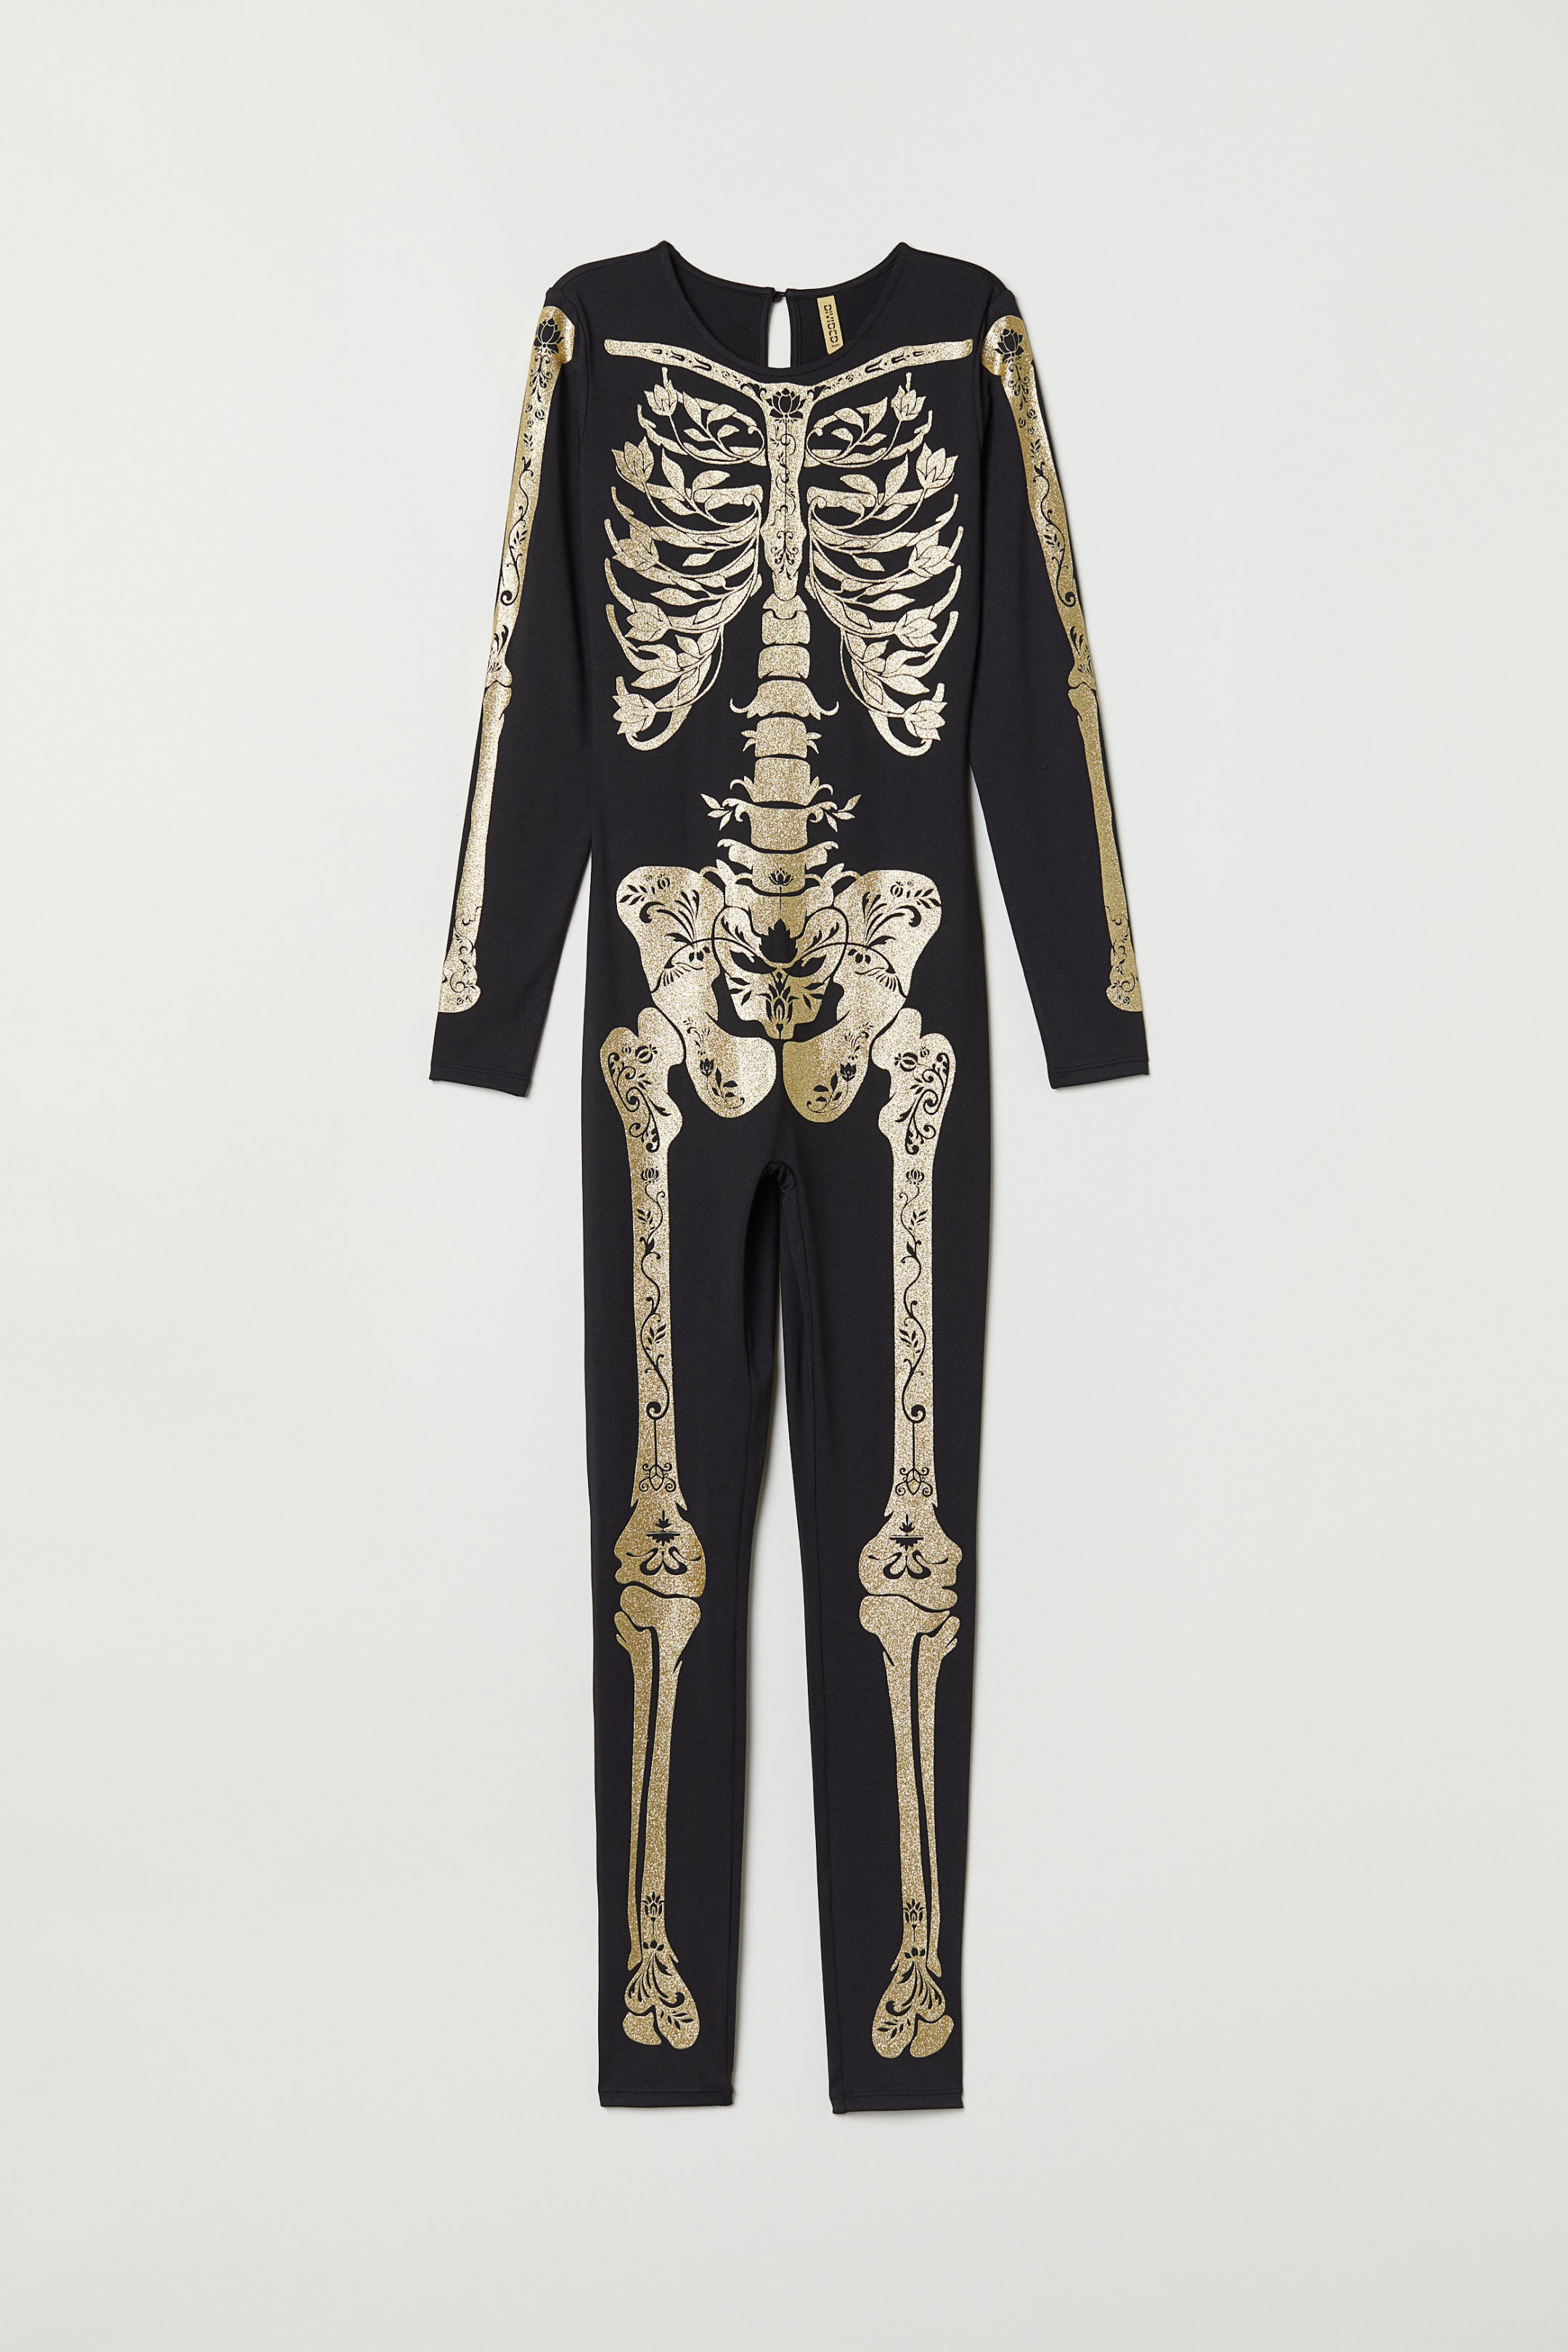 Black Skeleton Costume